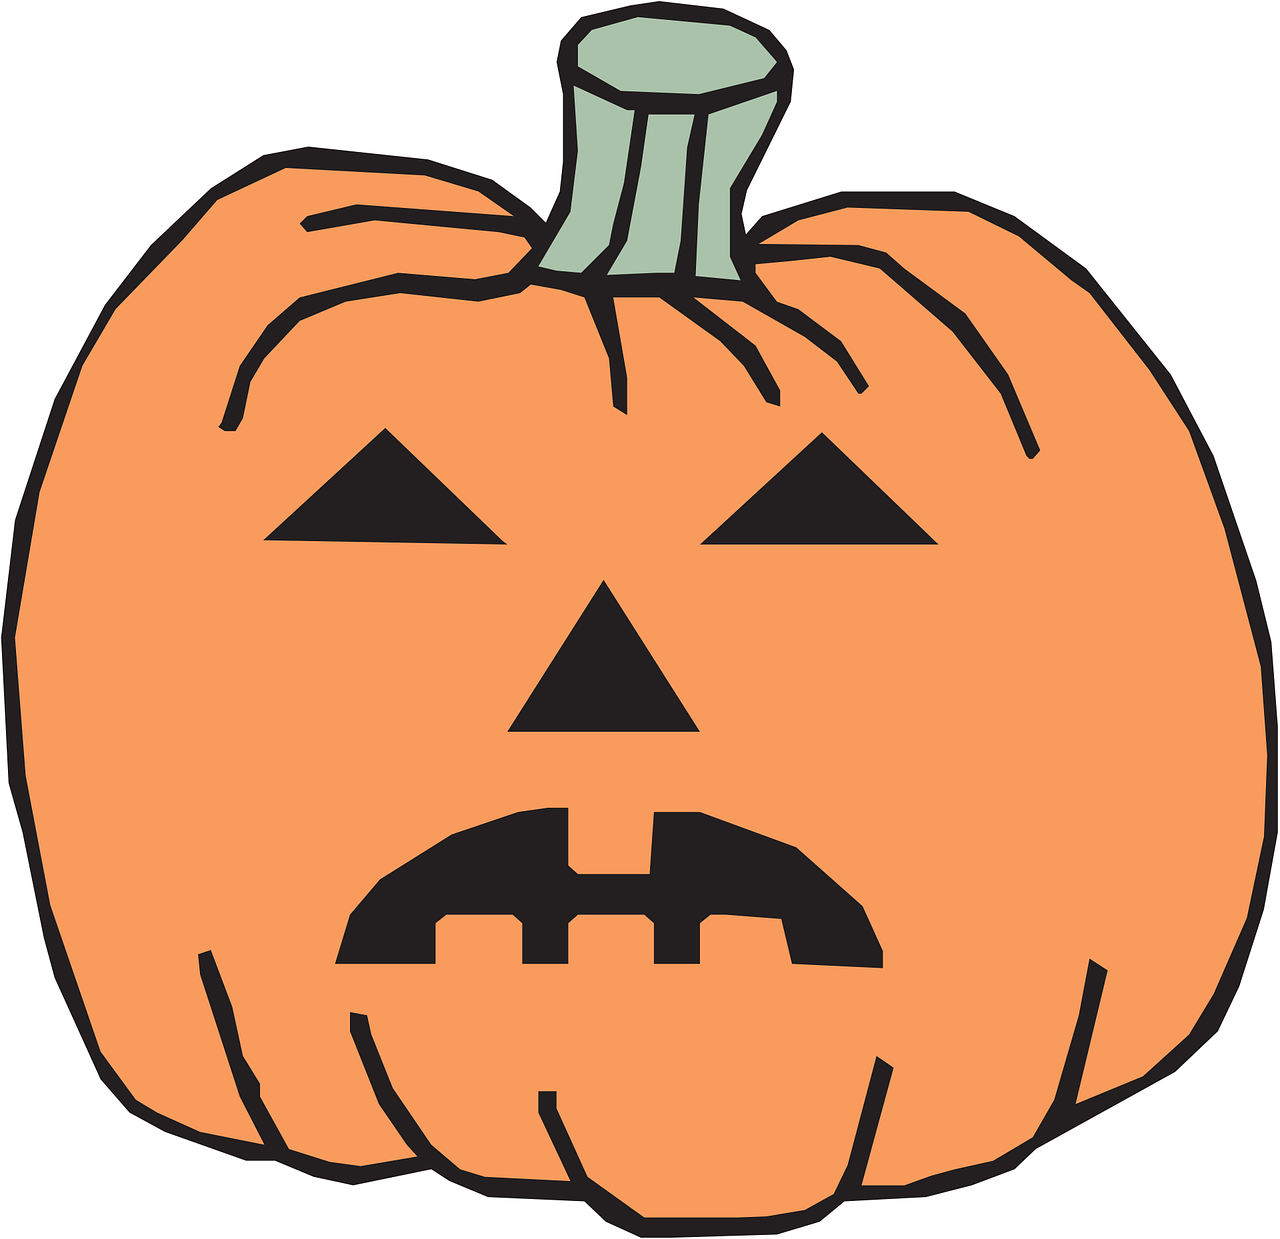 pumpkin halloween decoration free photo